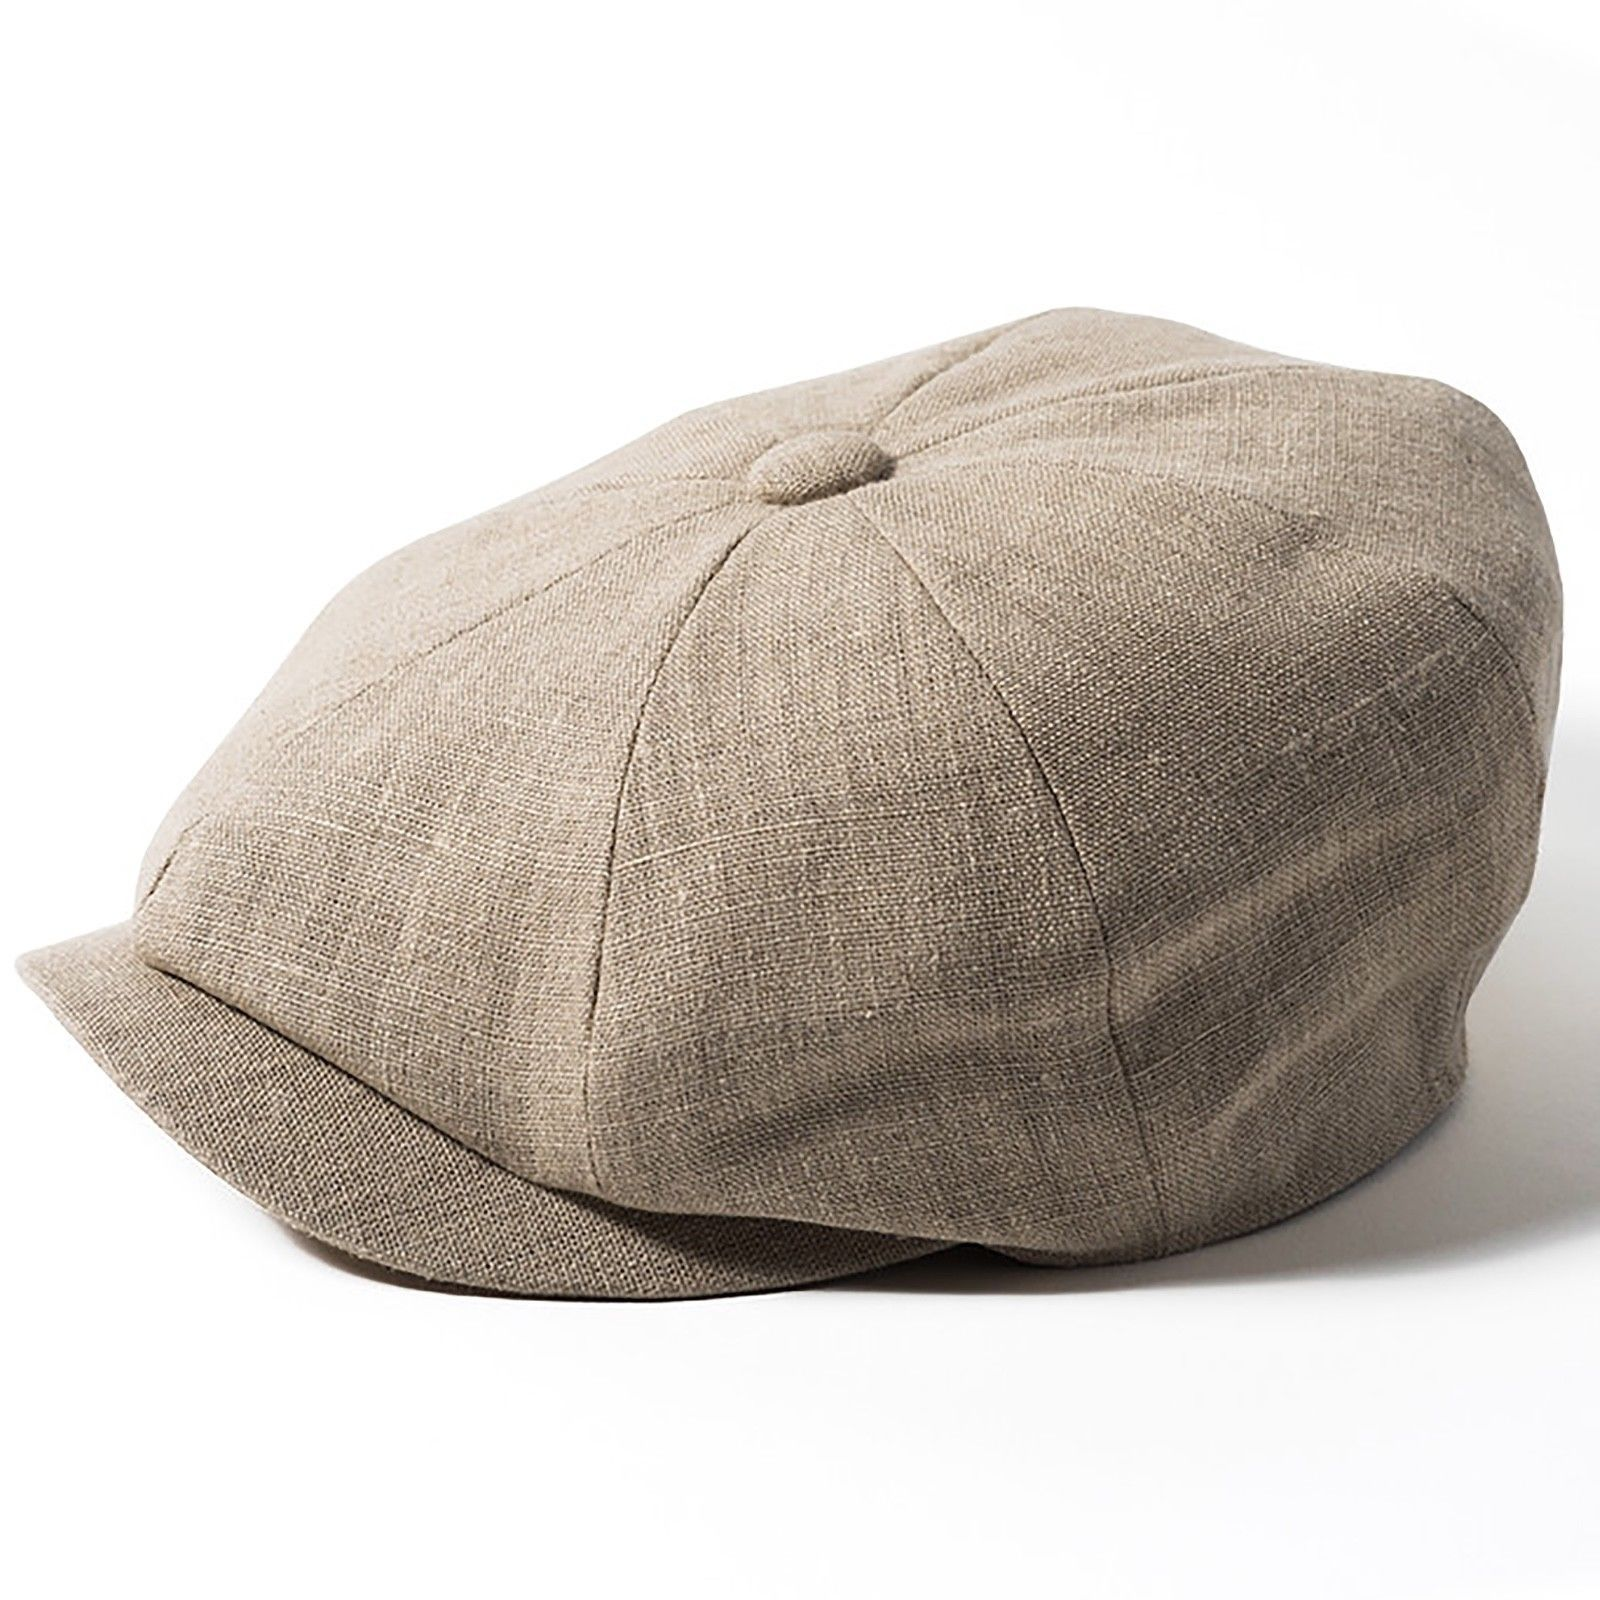 bea726a1fb1 Mens Hats 163619  Failsworth Alfie Irish Linen 8 Panel Newsboy Cap -  Biscuit -  BUY IT NOW ONLY   19.95 on  eBay  failsworth  alfie  irish  linen   panel ...